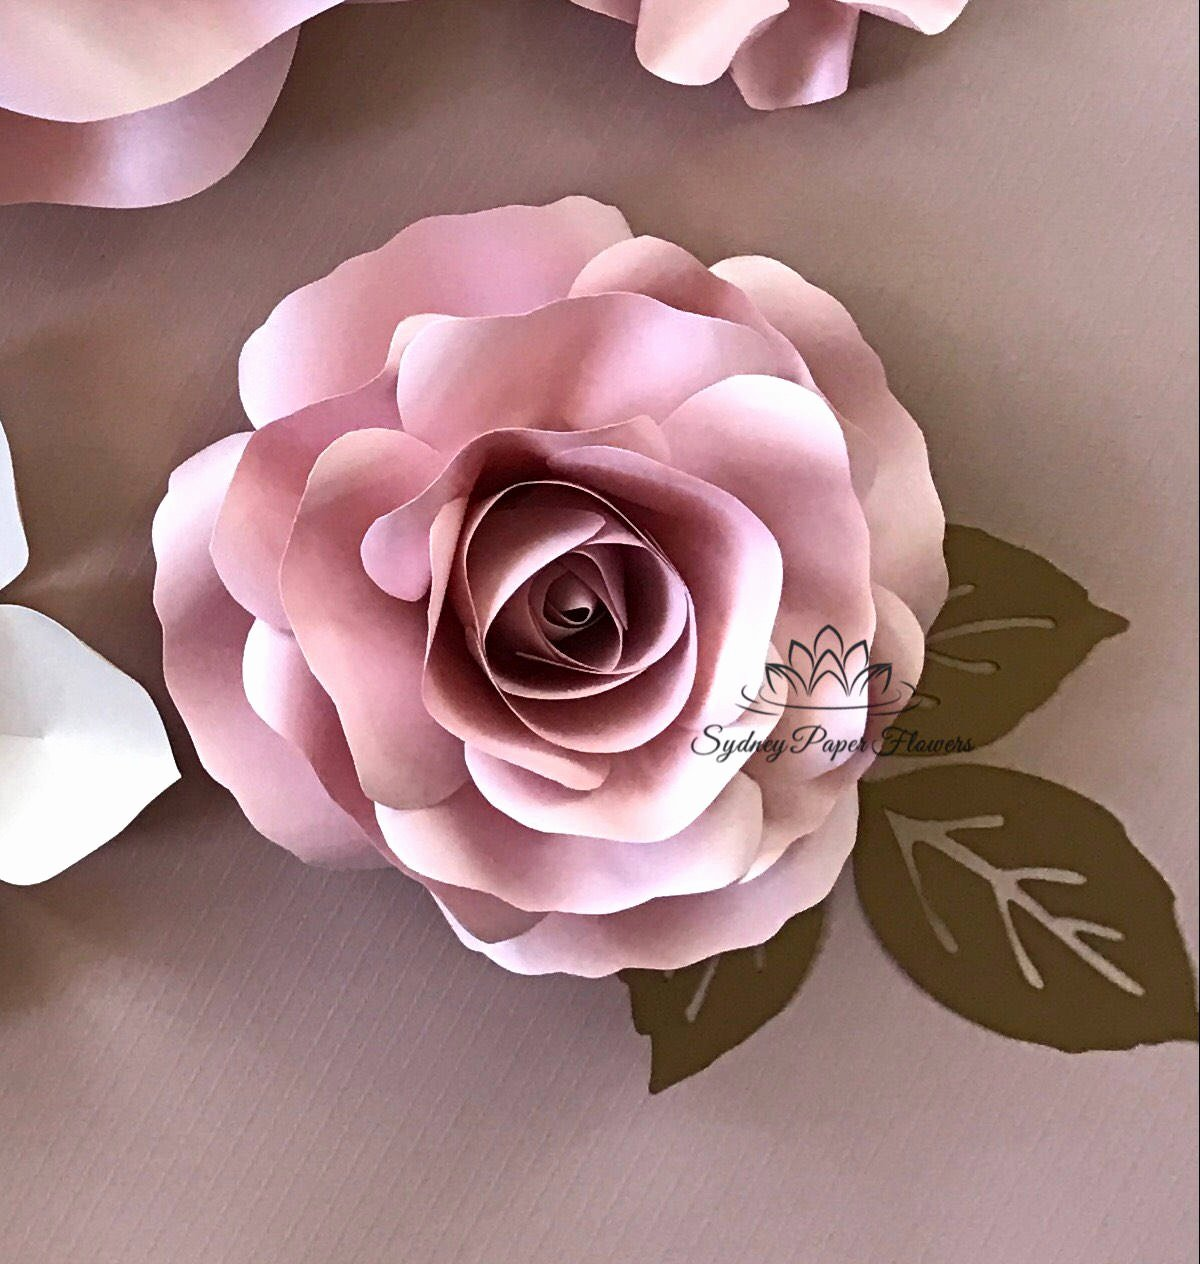 Template for Paper Flowers New Video Tutorial & Template Rose Bud Paper Flower Paper